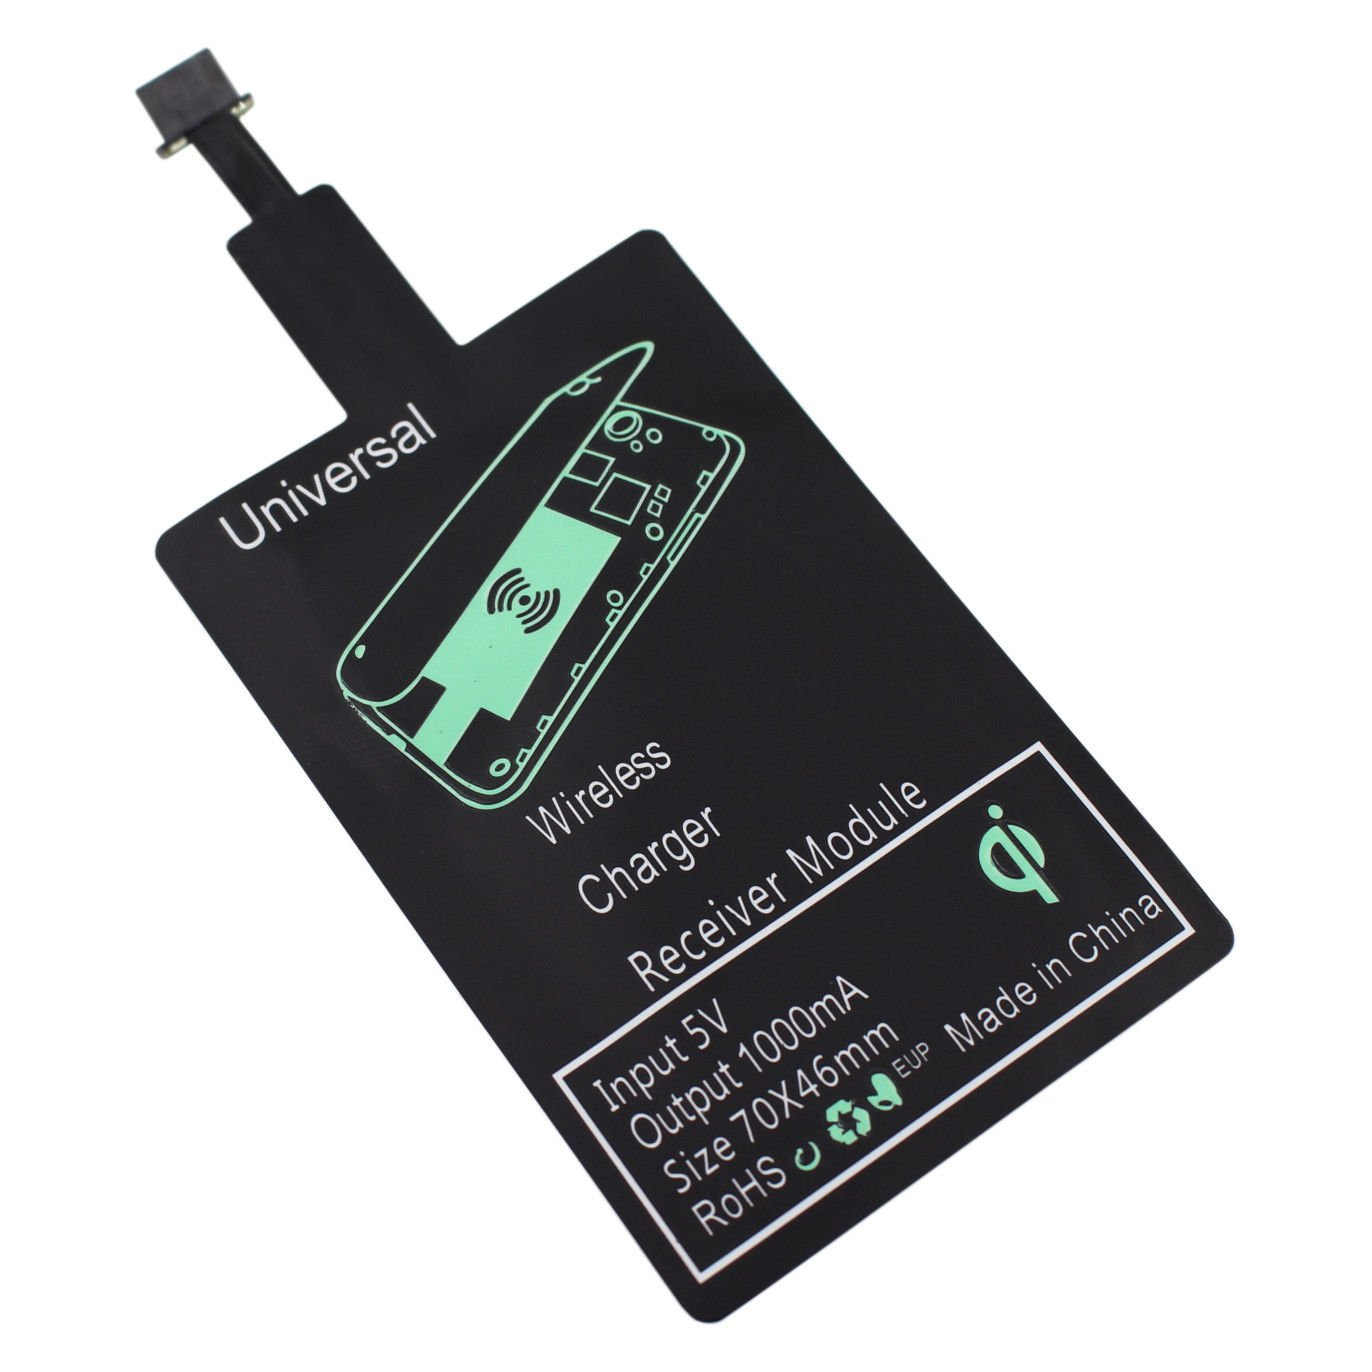 Qi Wireless Charging Receiver Charger Pad Module For Huawei P8 Lite (2017)